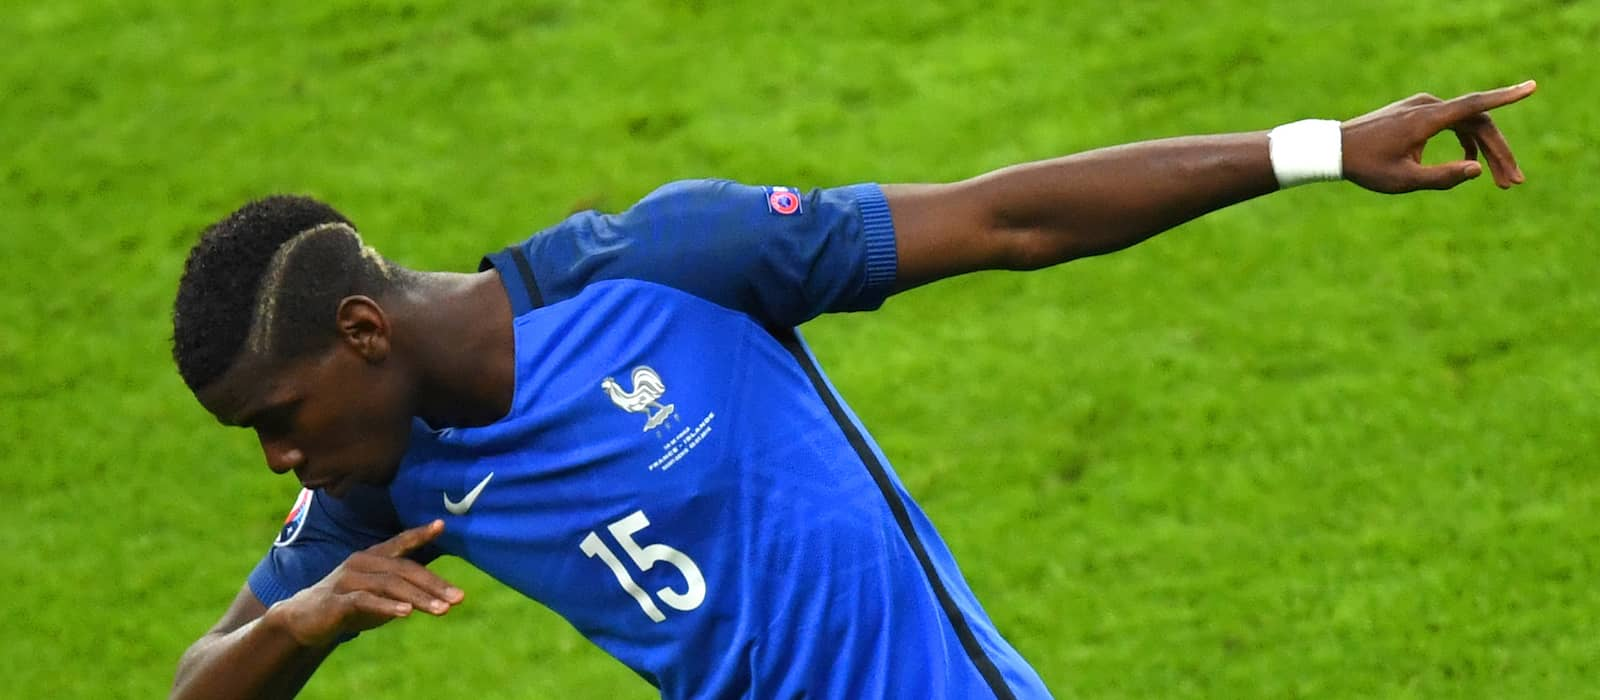 Man United transfer roundup including Pogba, Varane and Ibrahimovic